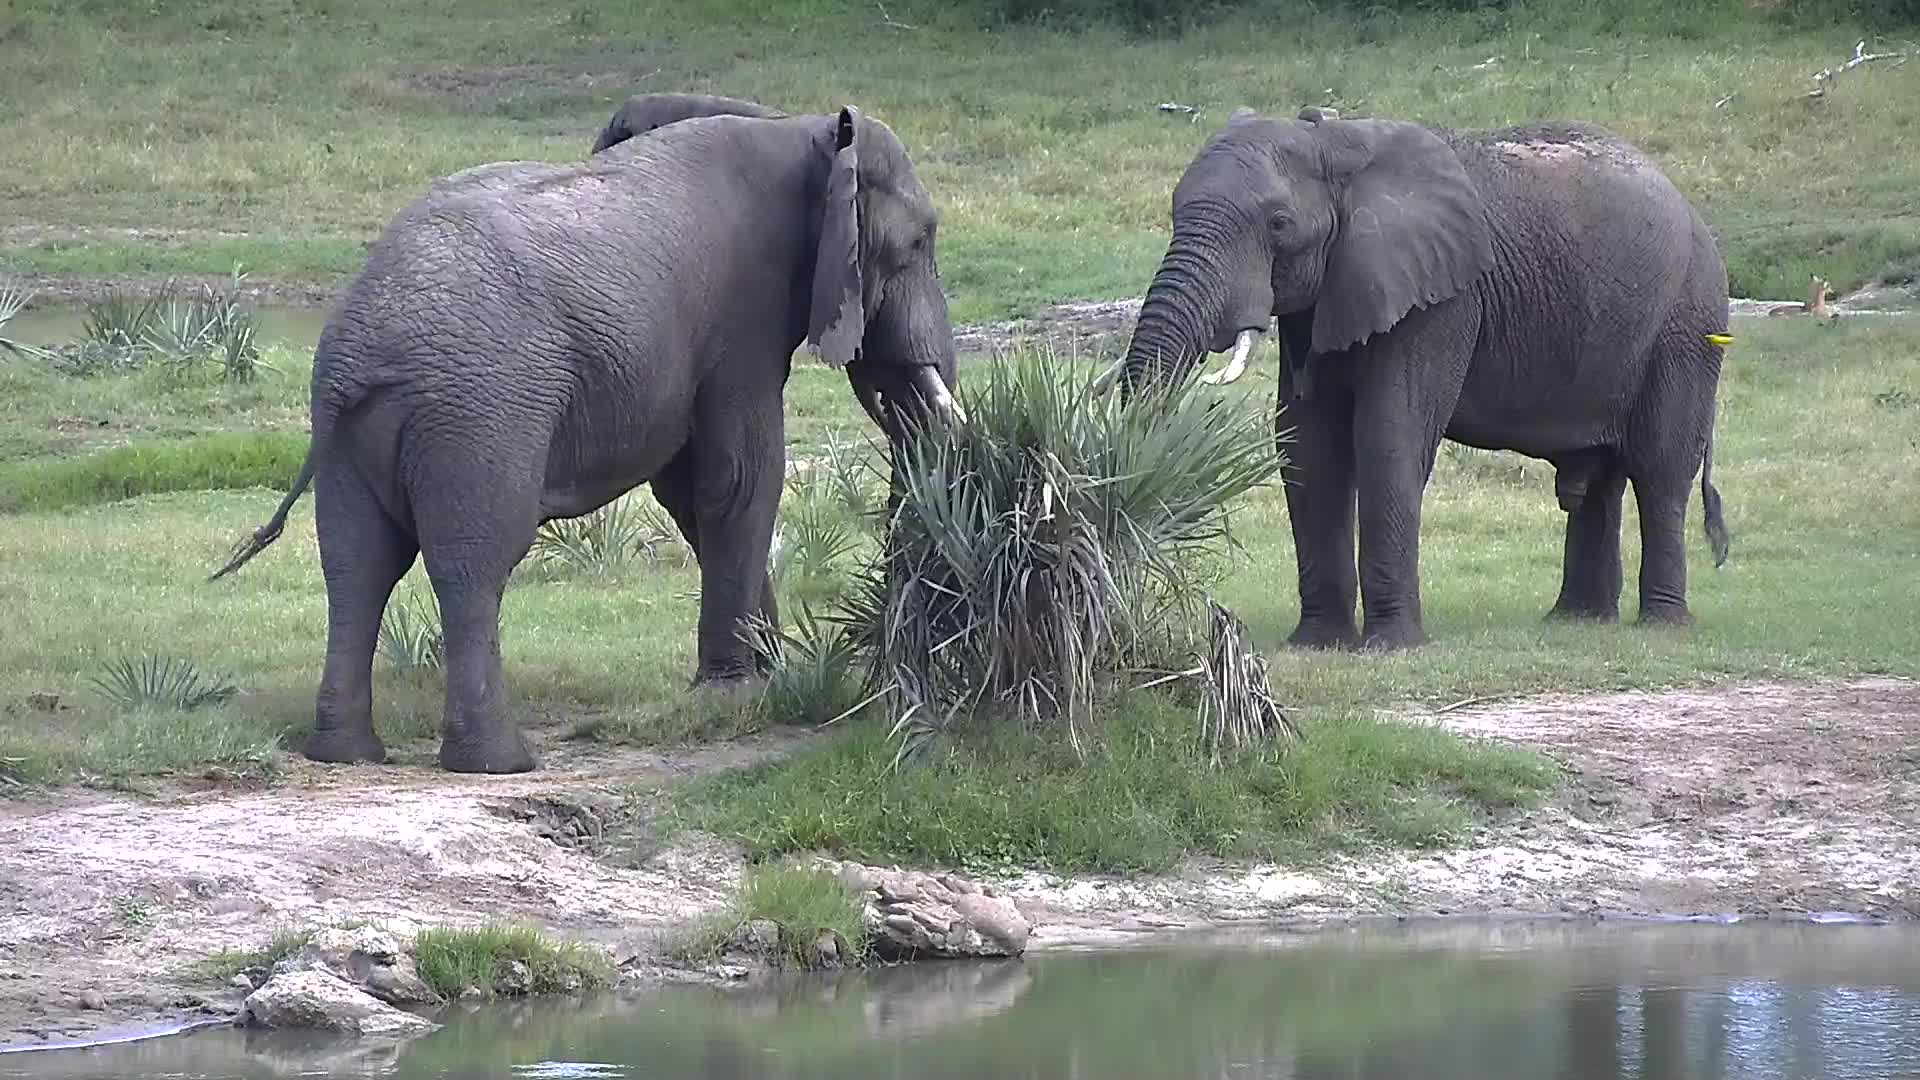 VIDEO:Elephants wrangling at the shore of the waterhole